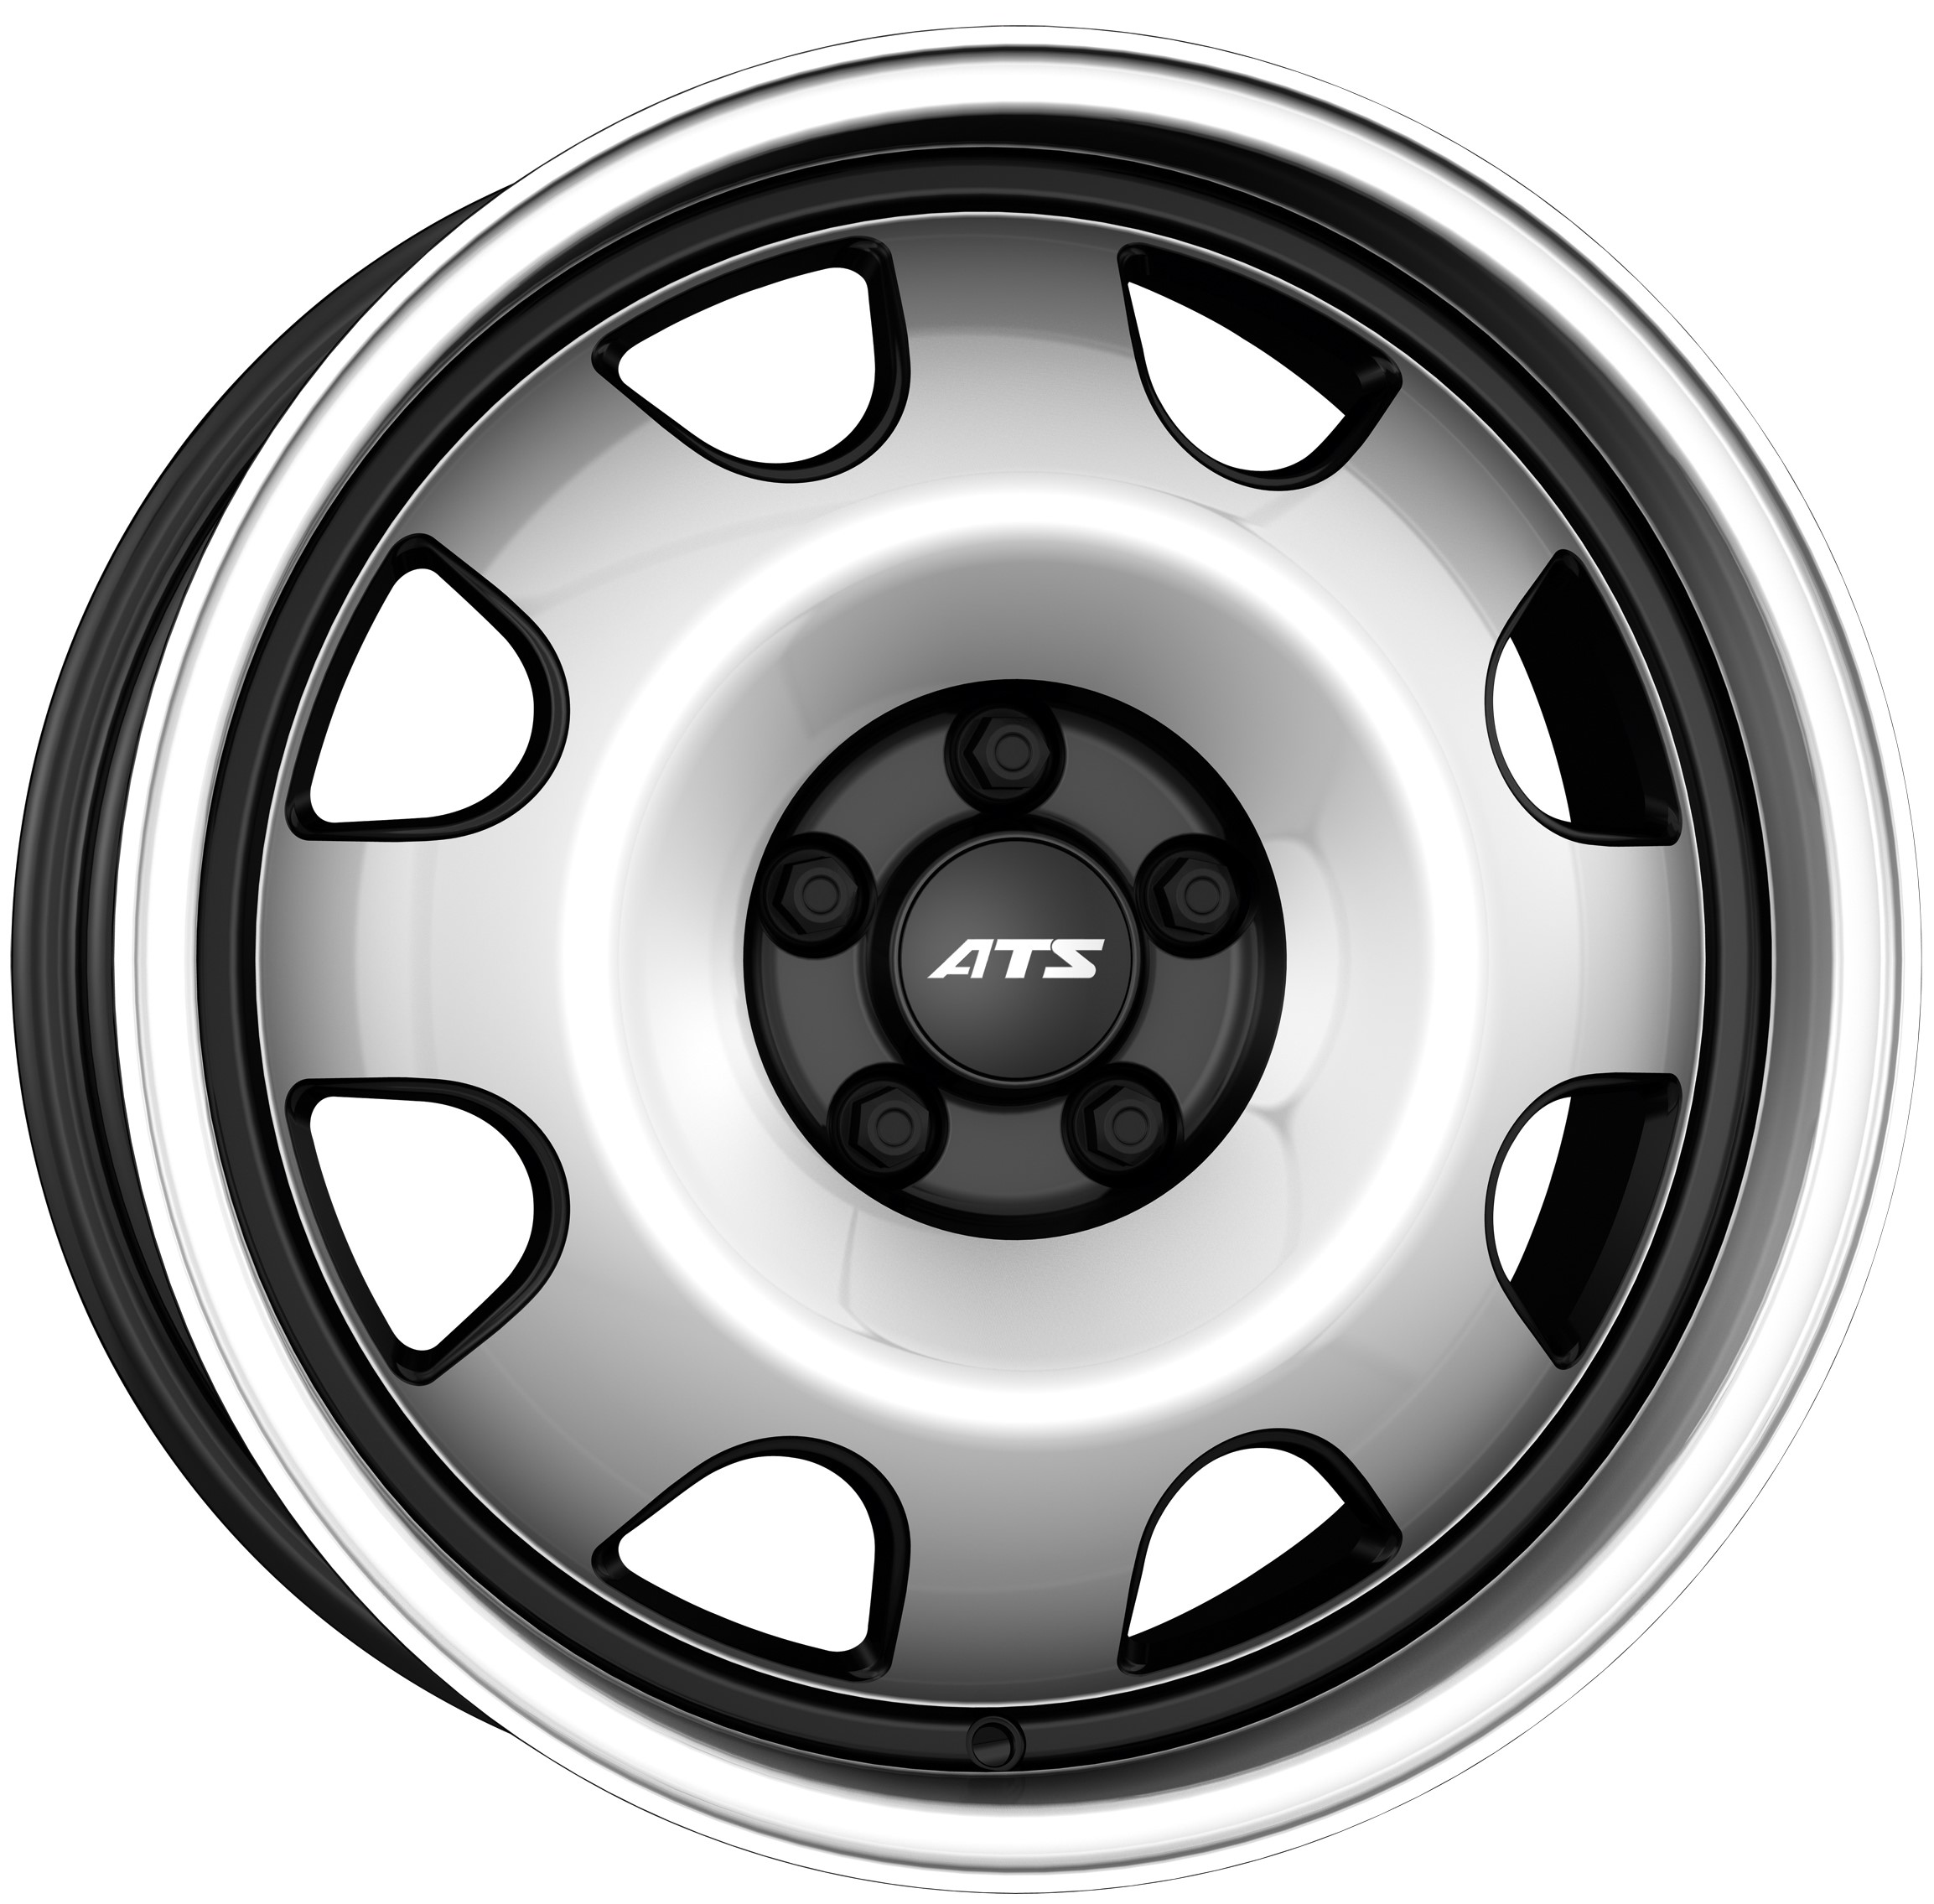 ATS - Cup (Diamond Black / Polished)